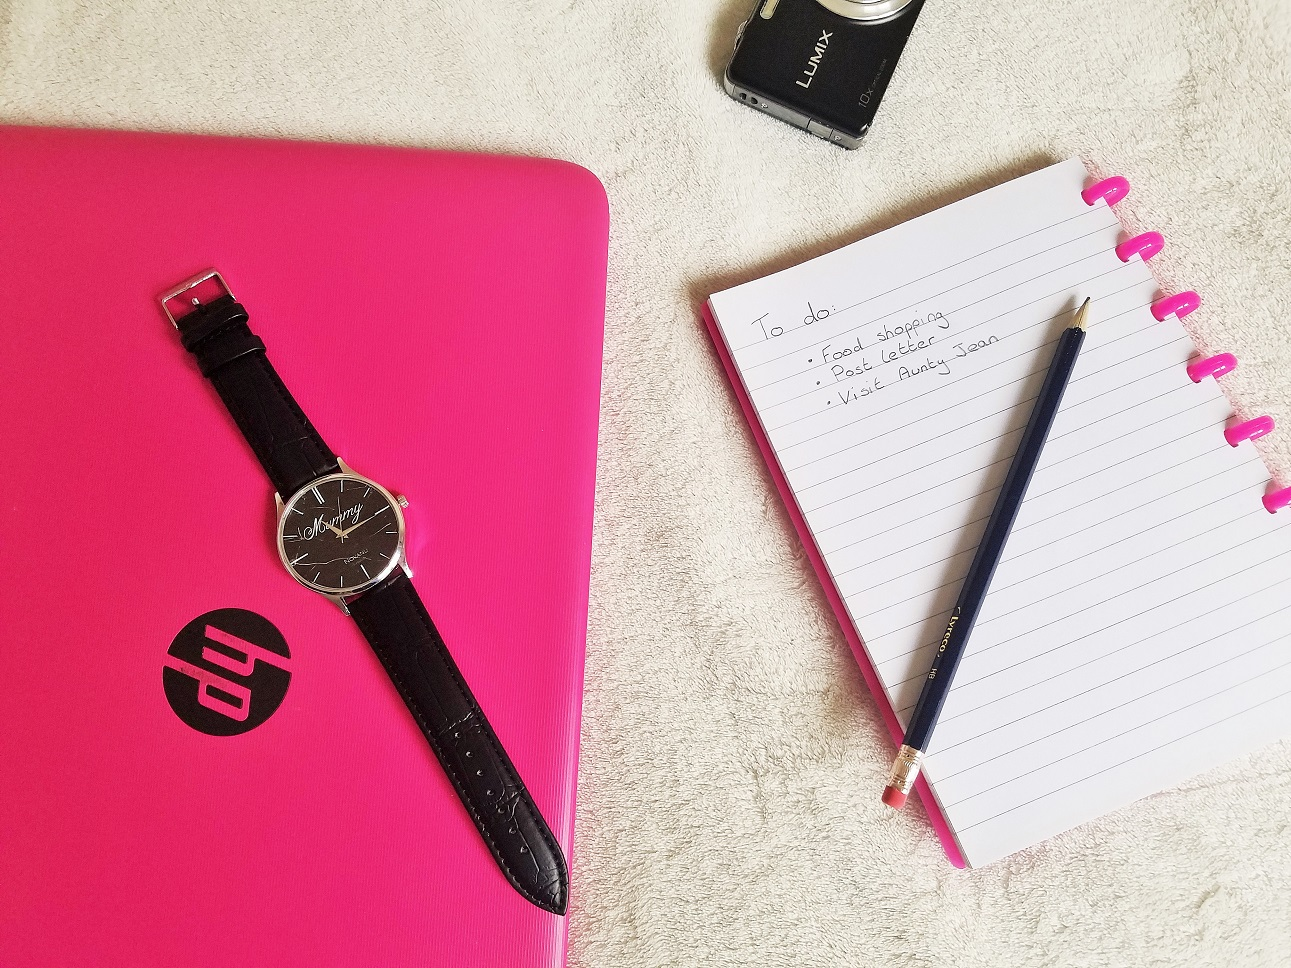 Novanu London Watch - Busy working mum, notepad and laptop - digital technology tips for mums